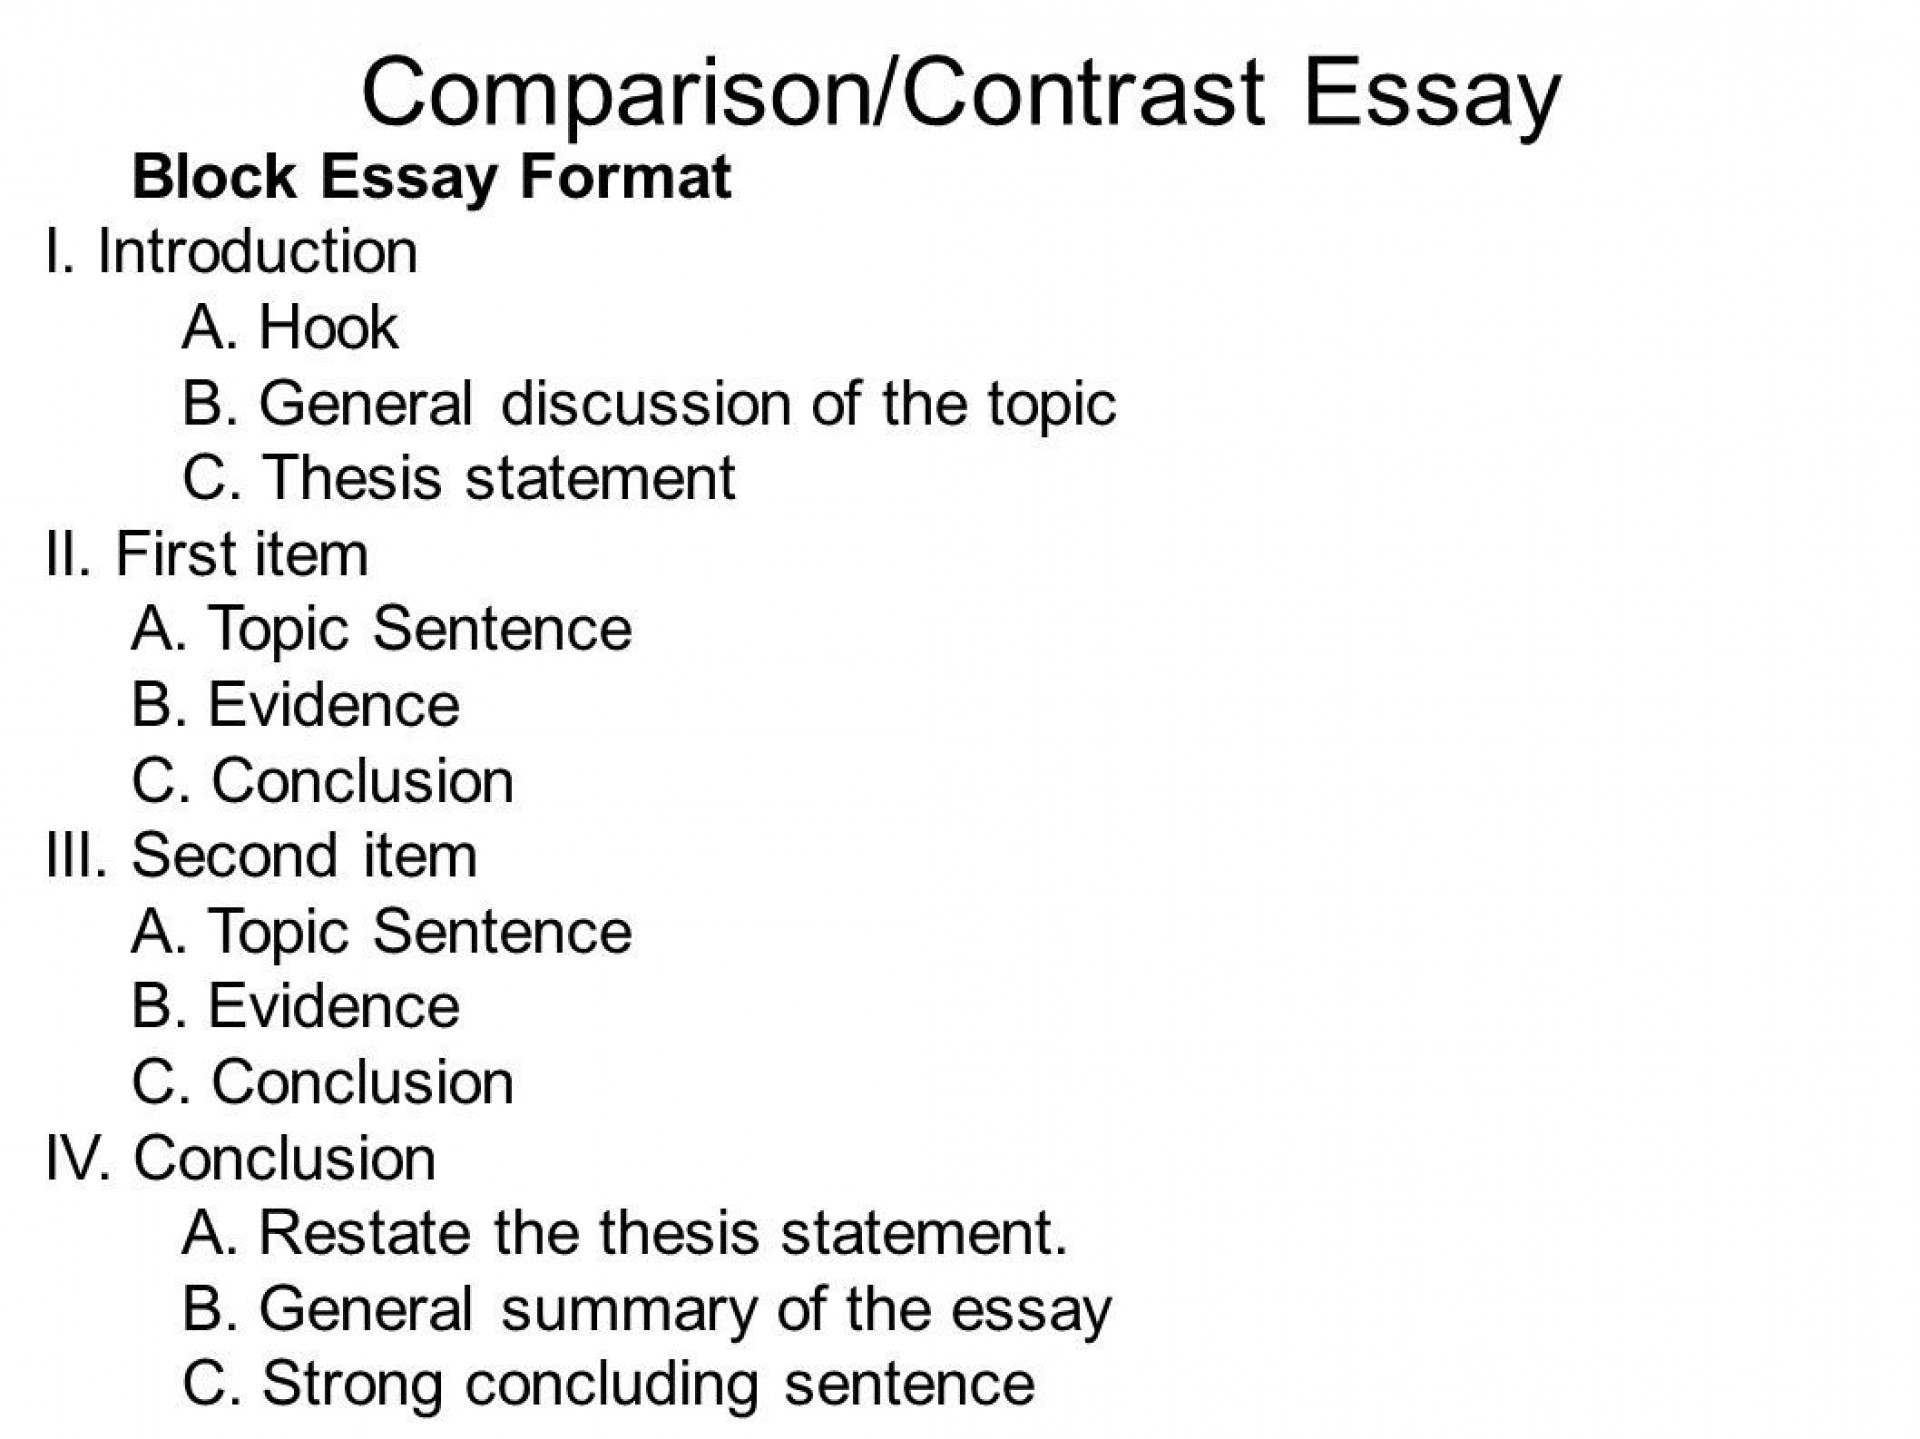 008 Essay Example How To Write Incredible A Comparison Contrast Outline Compare Introduction Ap World History 1920